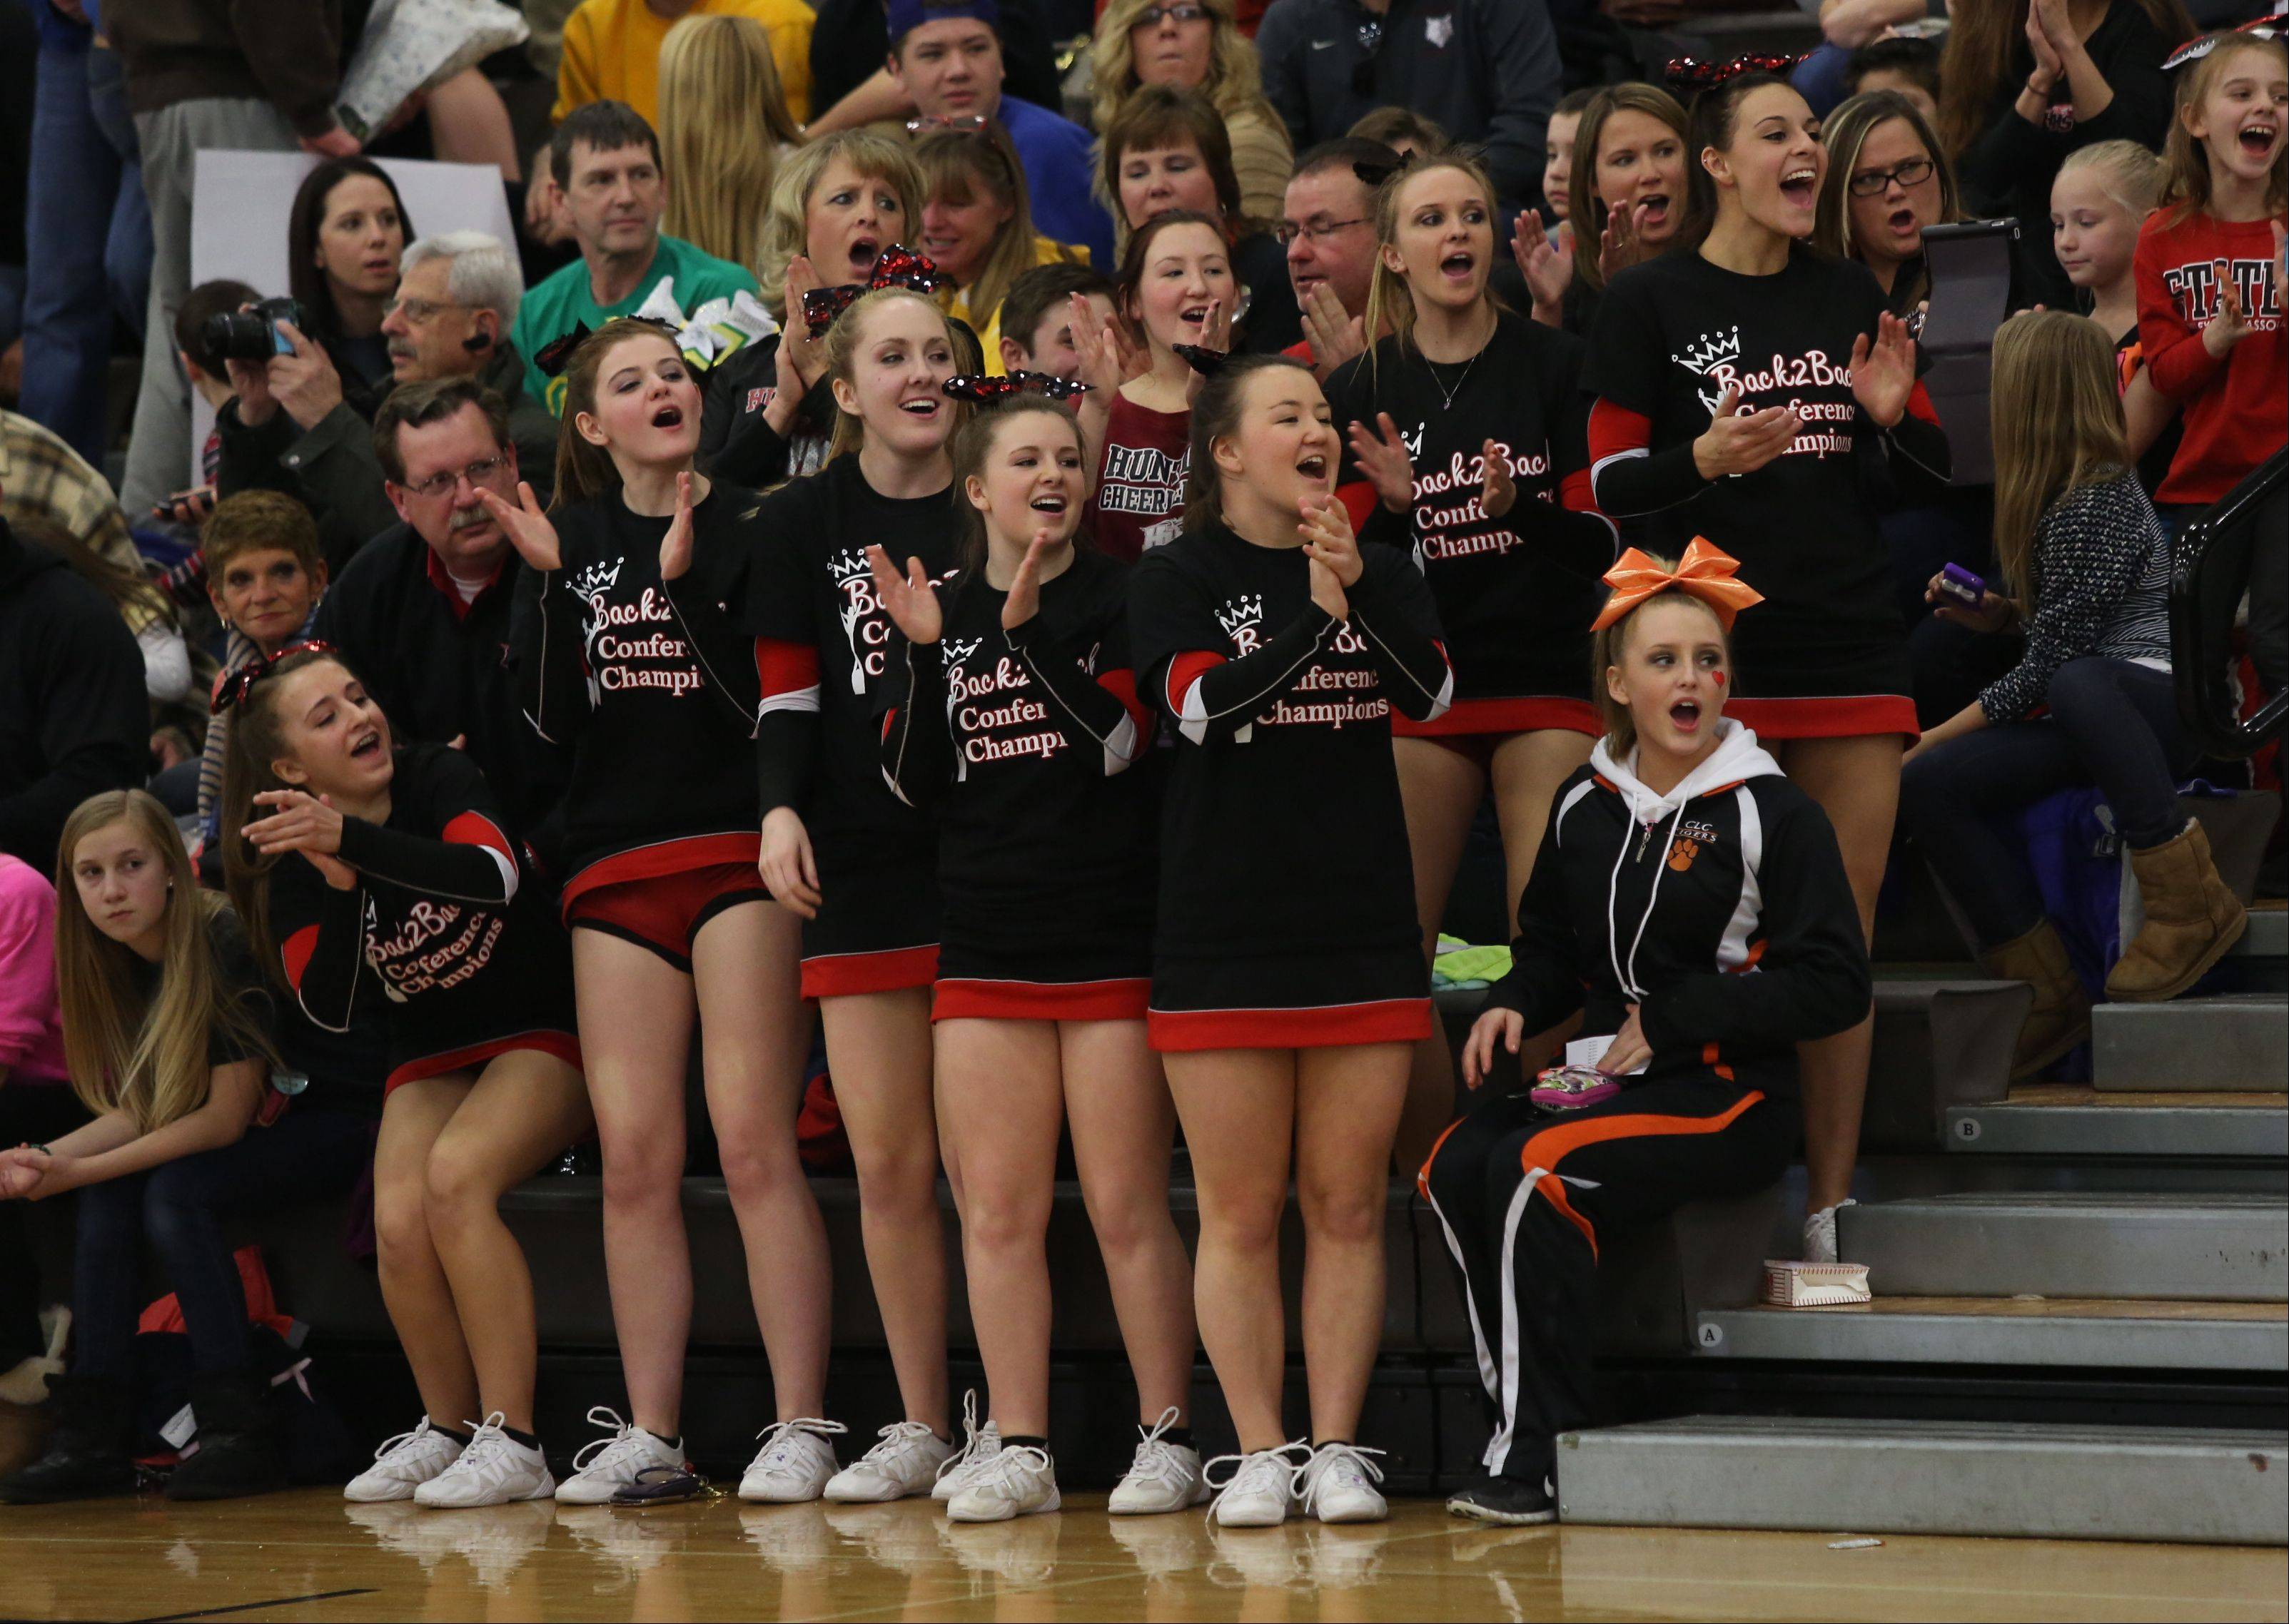 Huntley High School fans cheer for the team in the Large Team category during the IHSA Cheerleading Sectional Sunday hosted by Grayslake North High School.